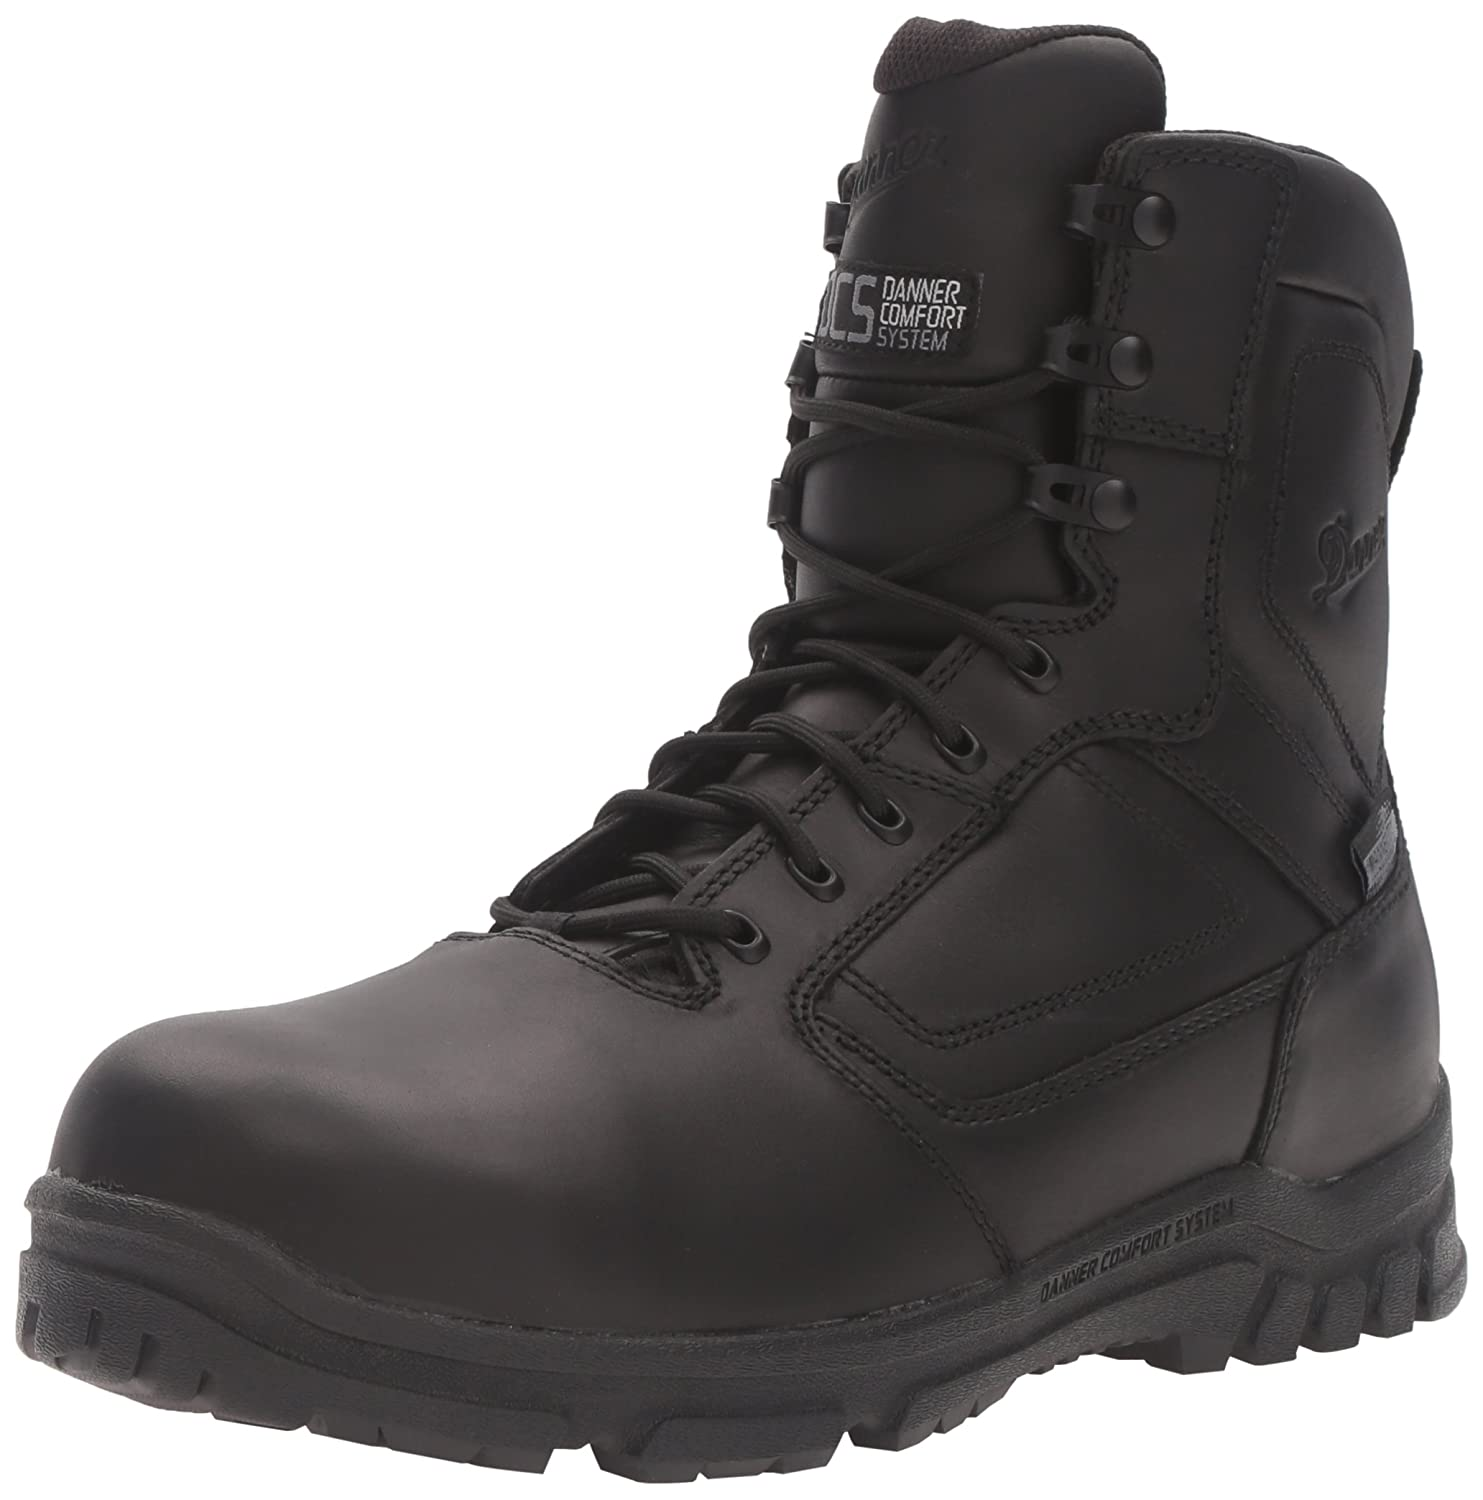 Black Danner Men's Lookout EMS CSA Side-Zip NMT Military & Tactical Boot